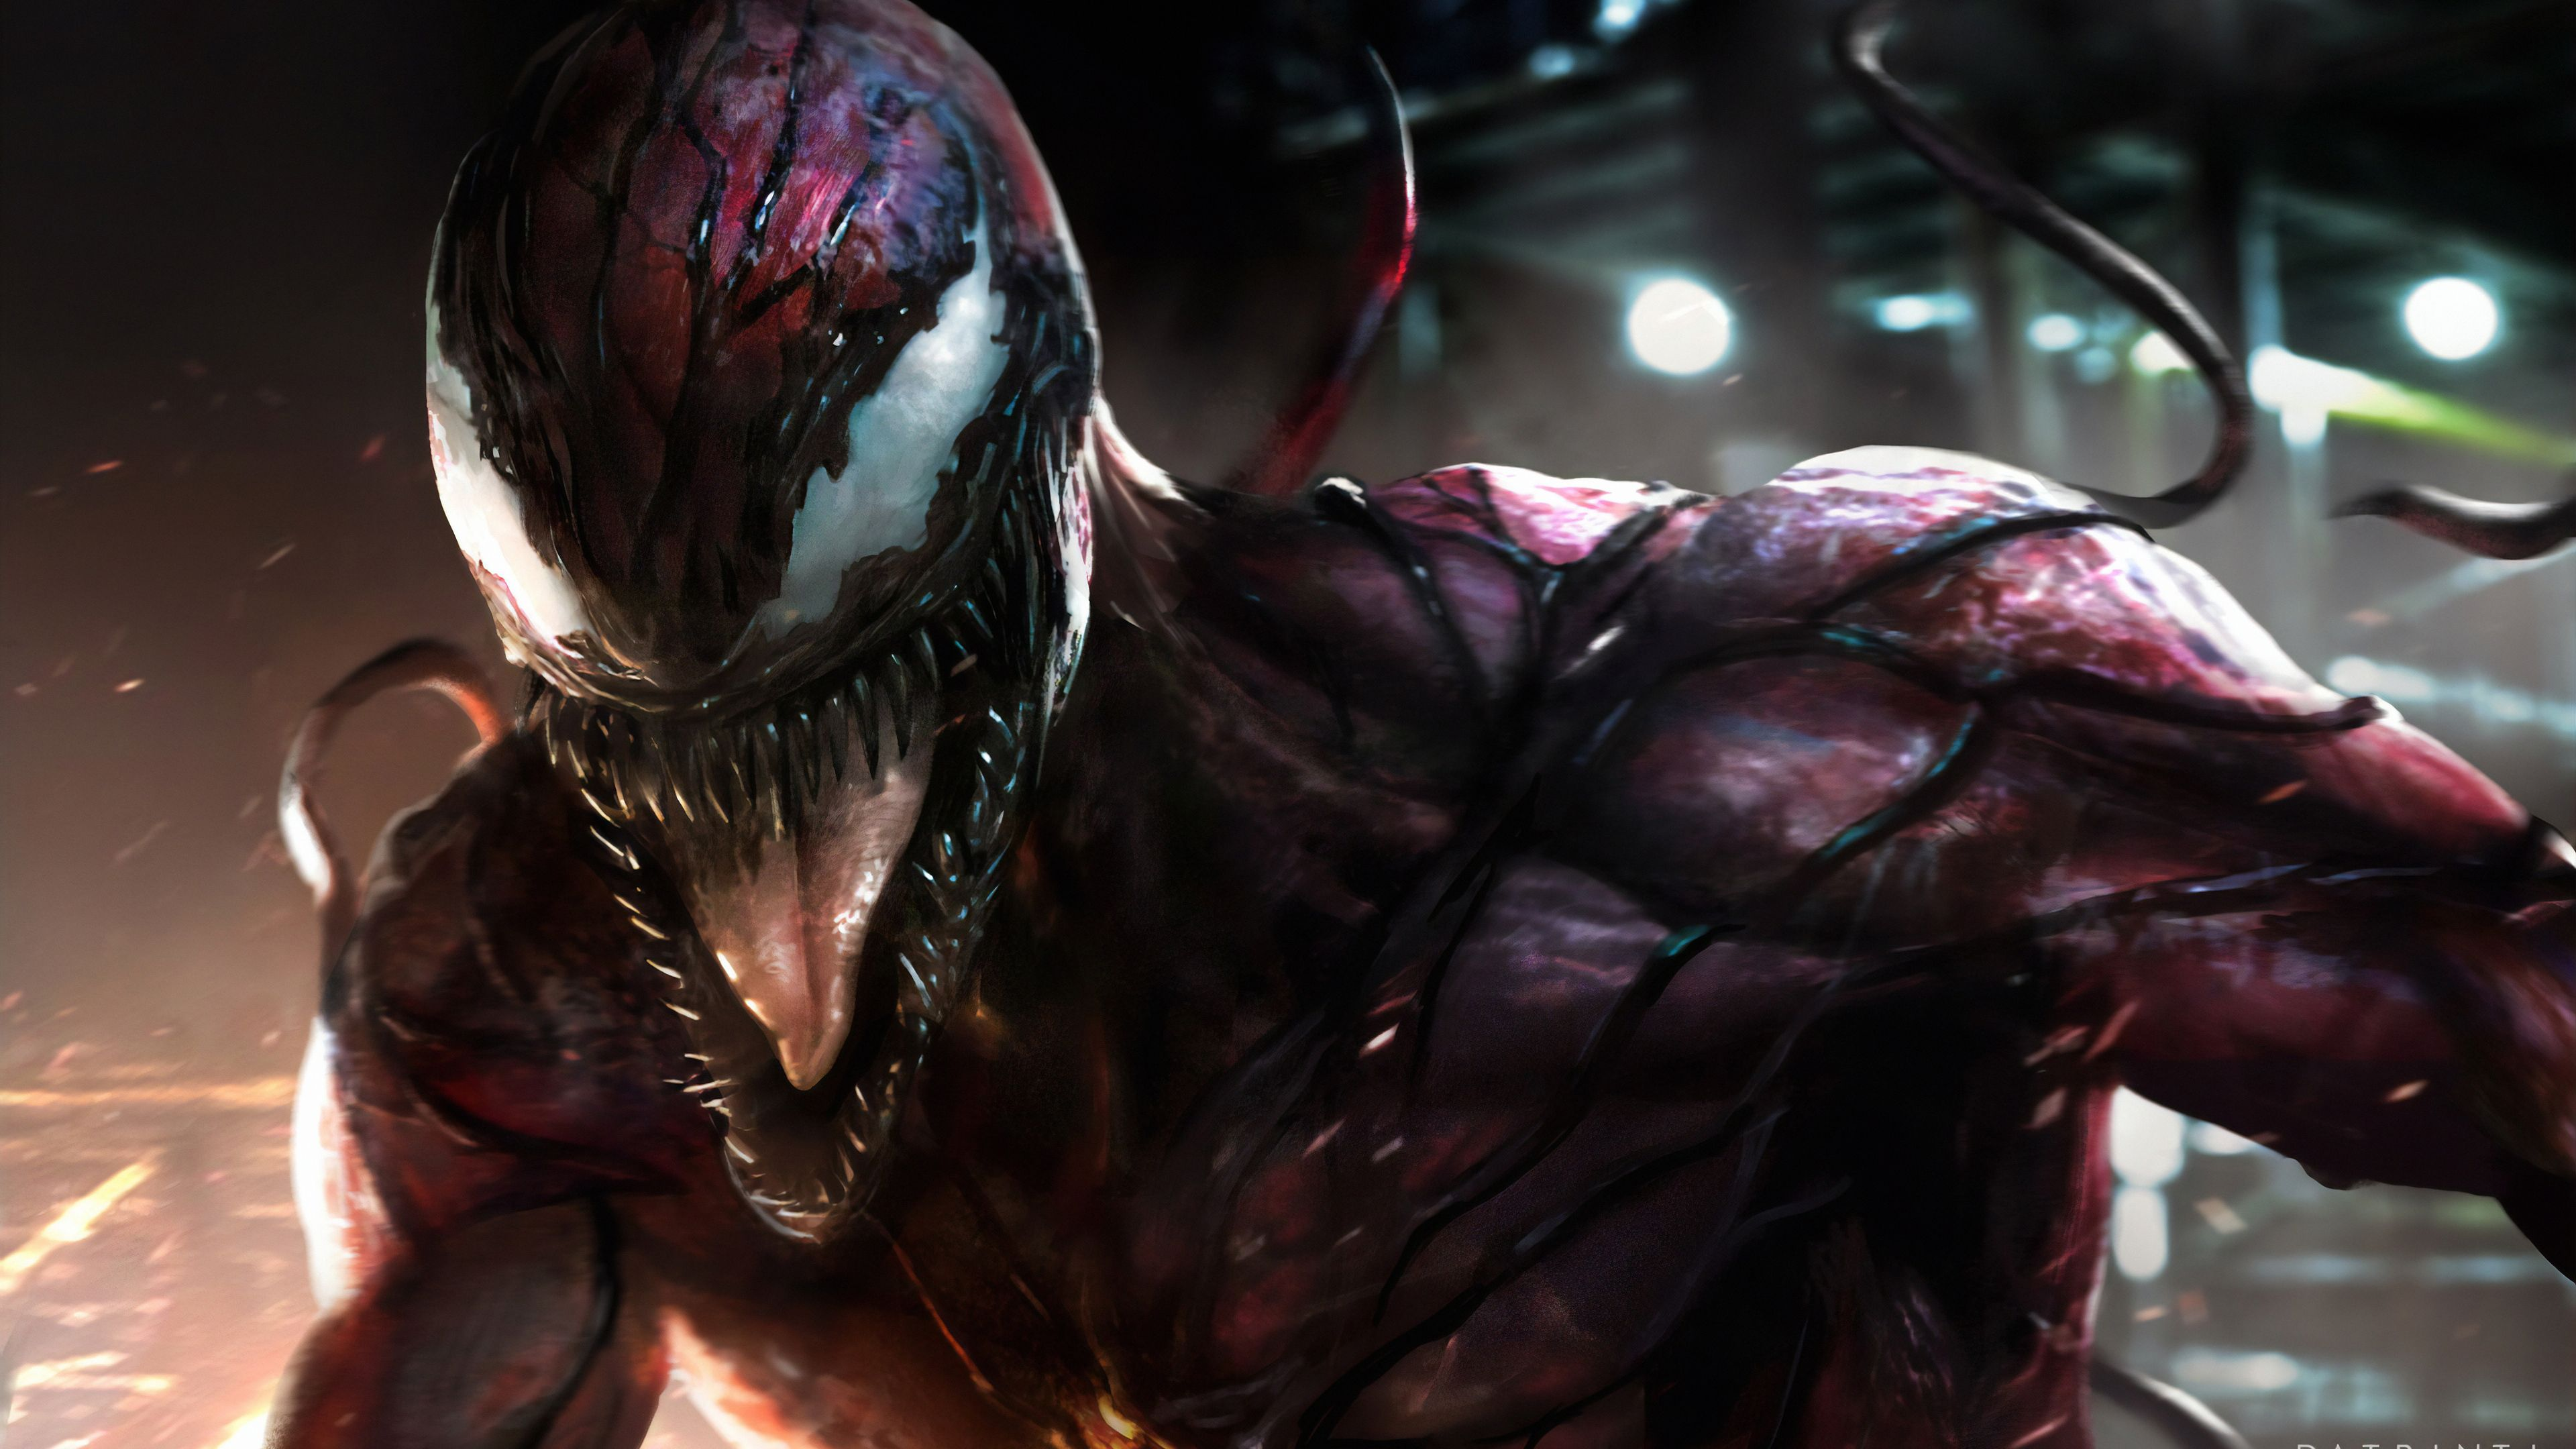 Carnage Superheroes Wallpapers Hd Wallpapers Digital Art Wallpapers Carnage Wallpapers Behance Wallpapers Artwork In 2020 Carnage Marvel Carnage Carnage Symbiote